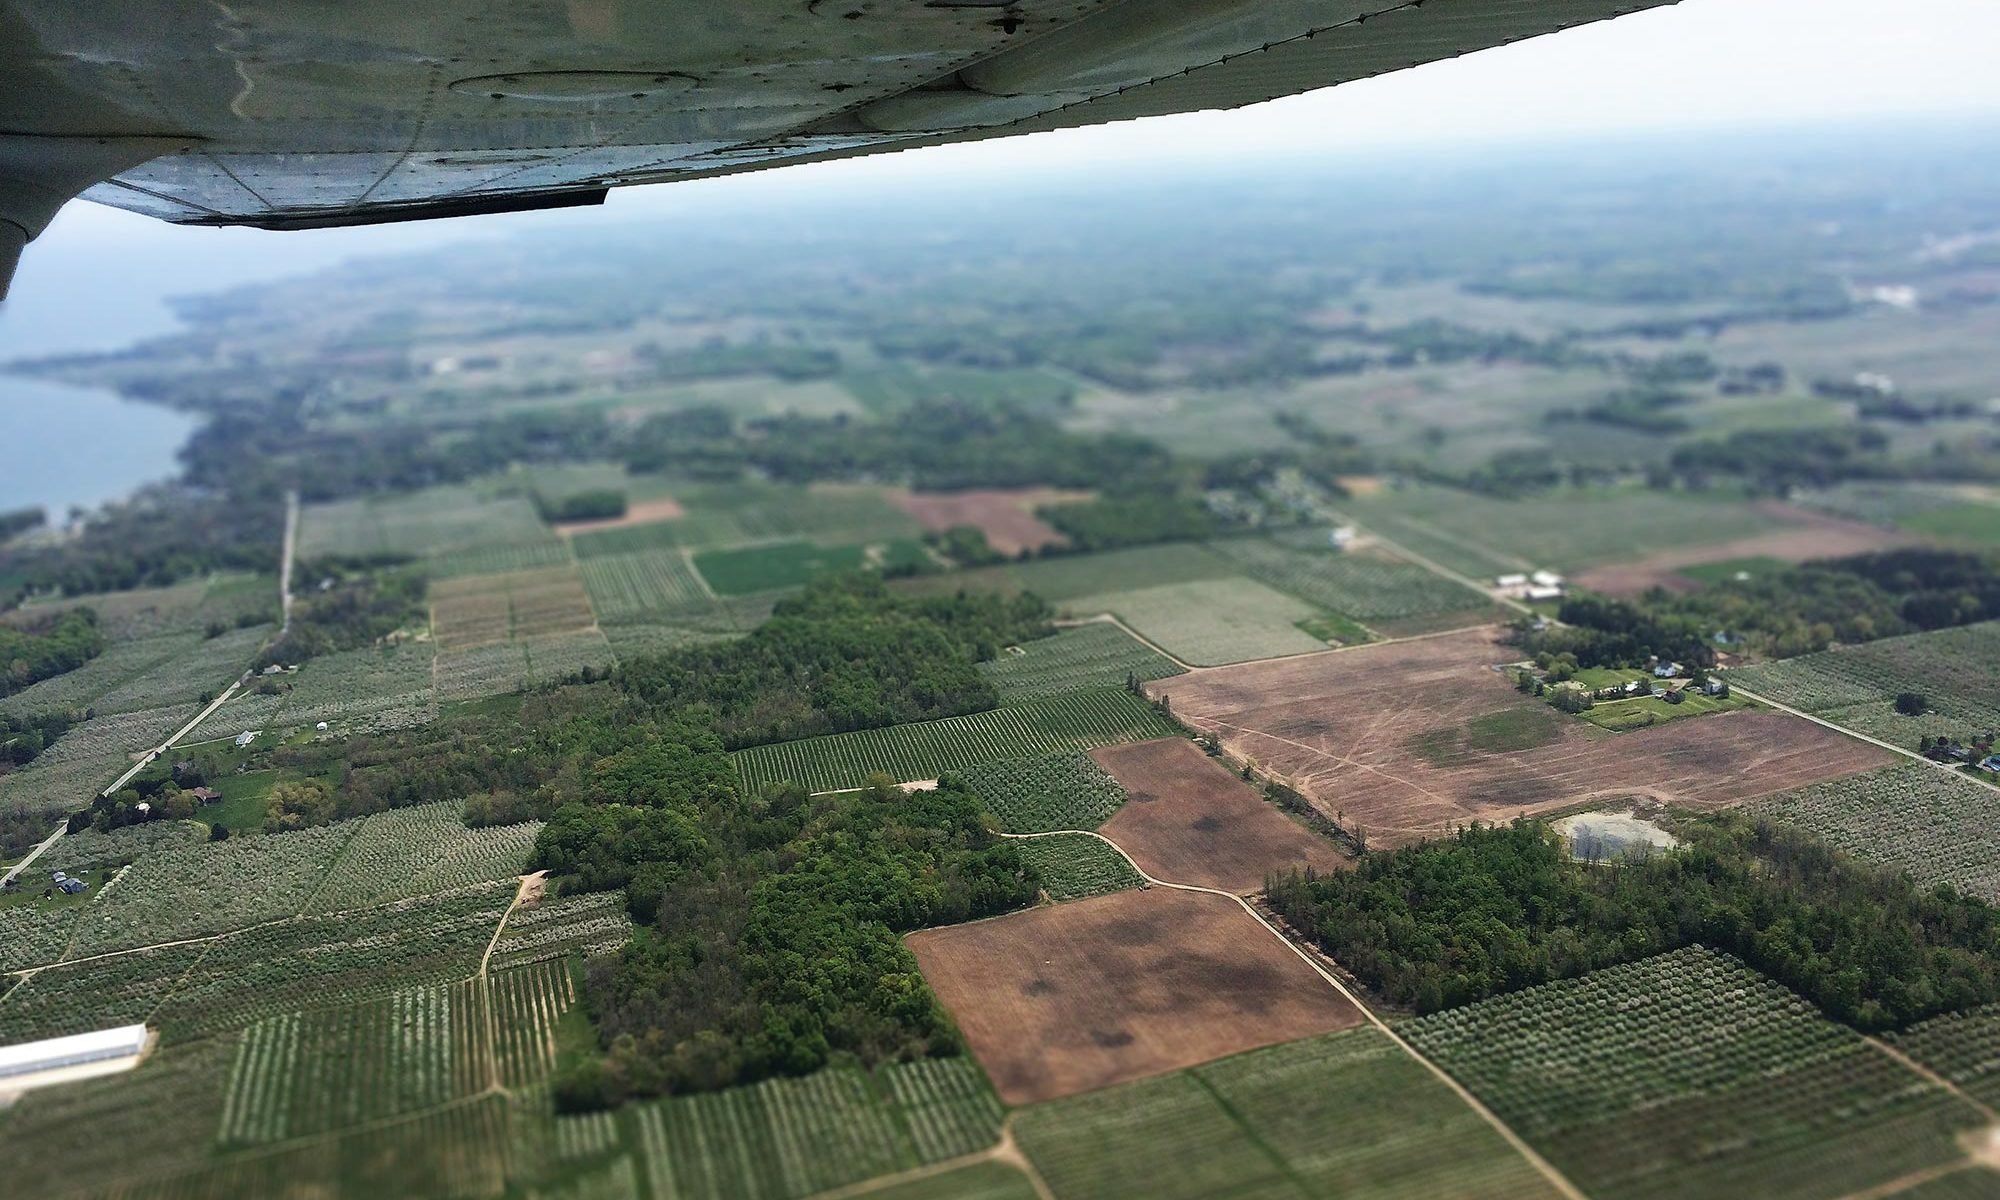 image of clear field from plane for negative target fixation blog post - Gregory Olson